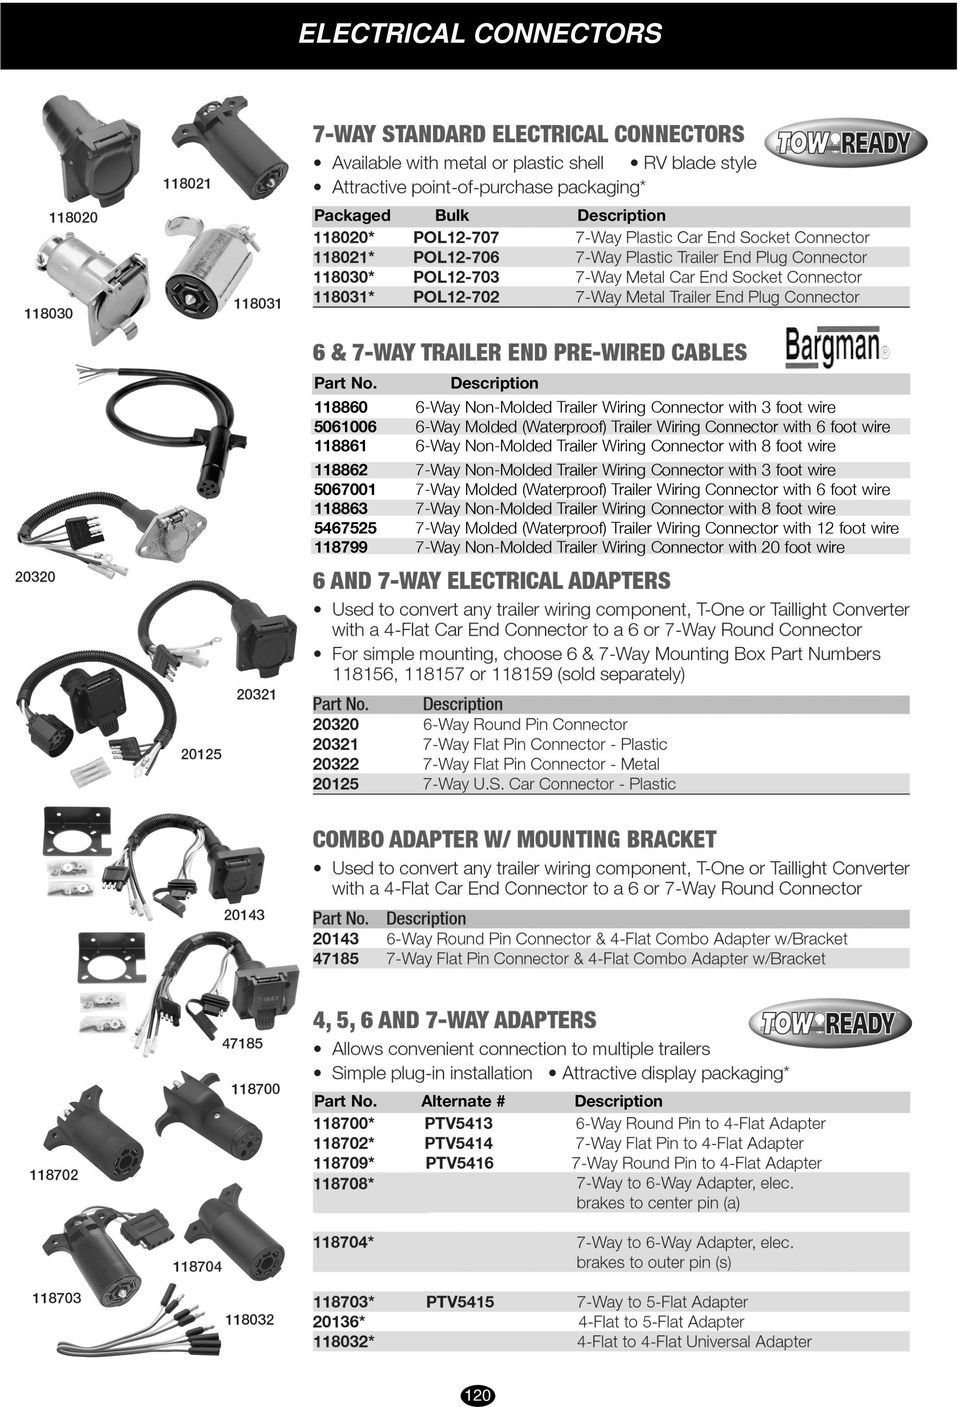 Electrical Connectors Pdf 6 Way Trailer Wiring Harness 100 Feet Wire Non Molded Connector With 8 Foot 121